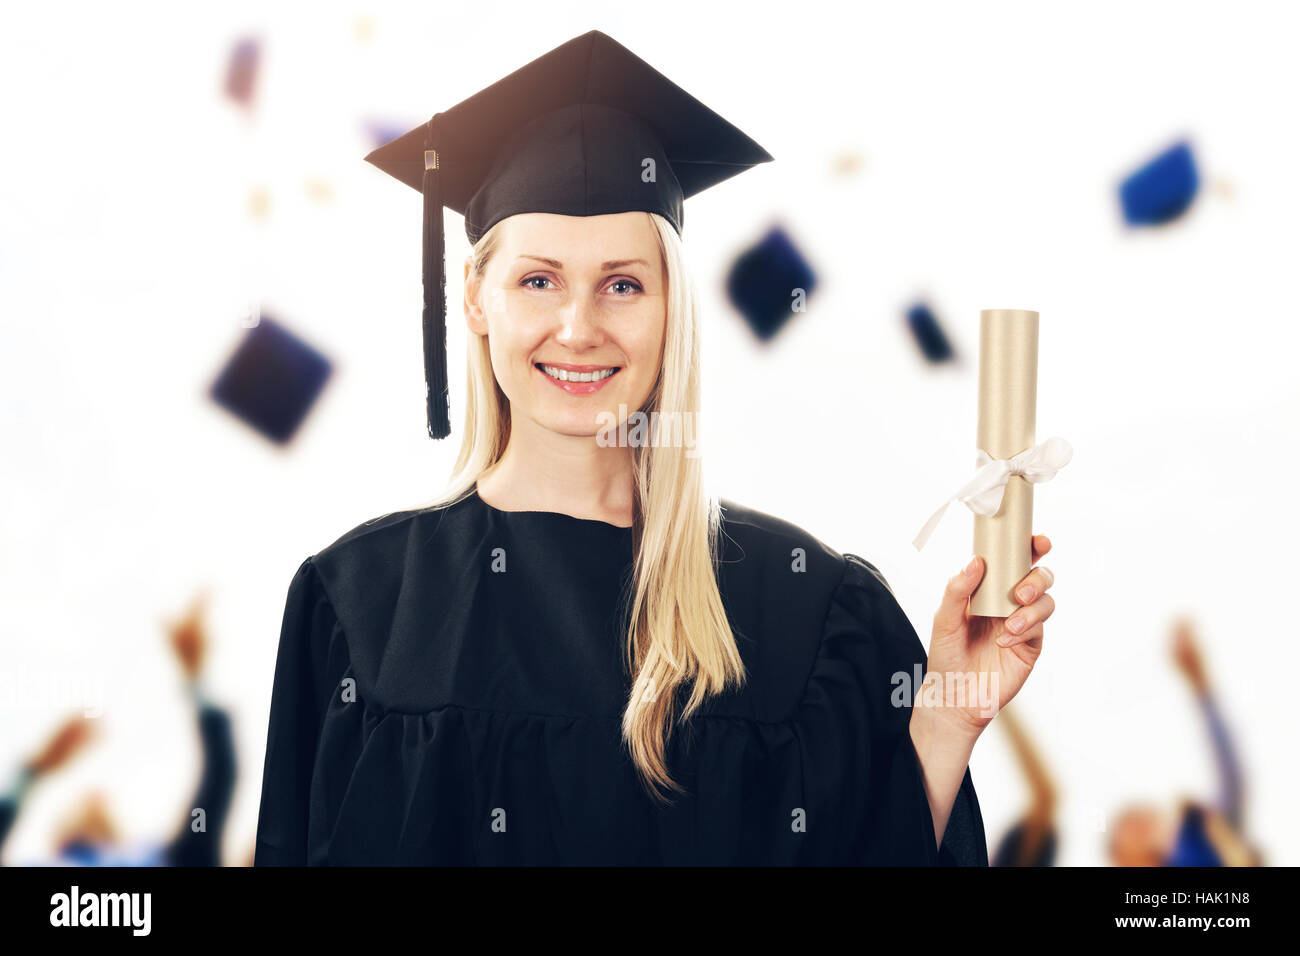 college graduation - woman wearing gown showing diploma - Stock Image